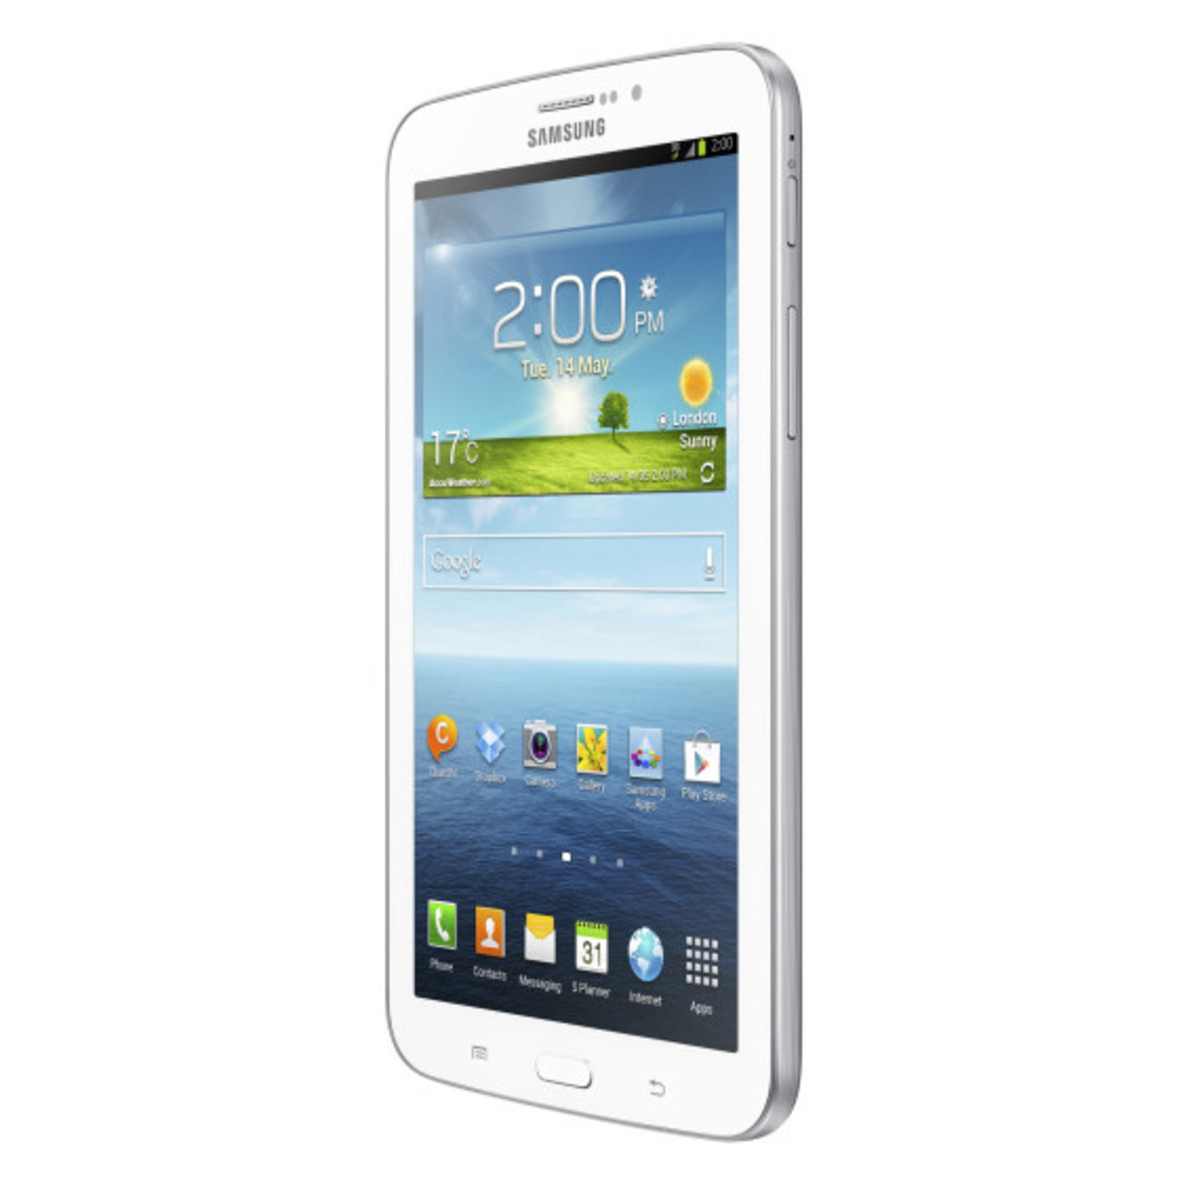 Samsung Galaxy Tab 3 - Officially Unveiled - 2